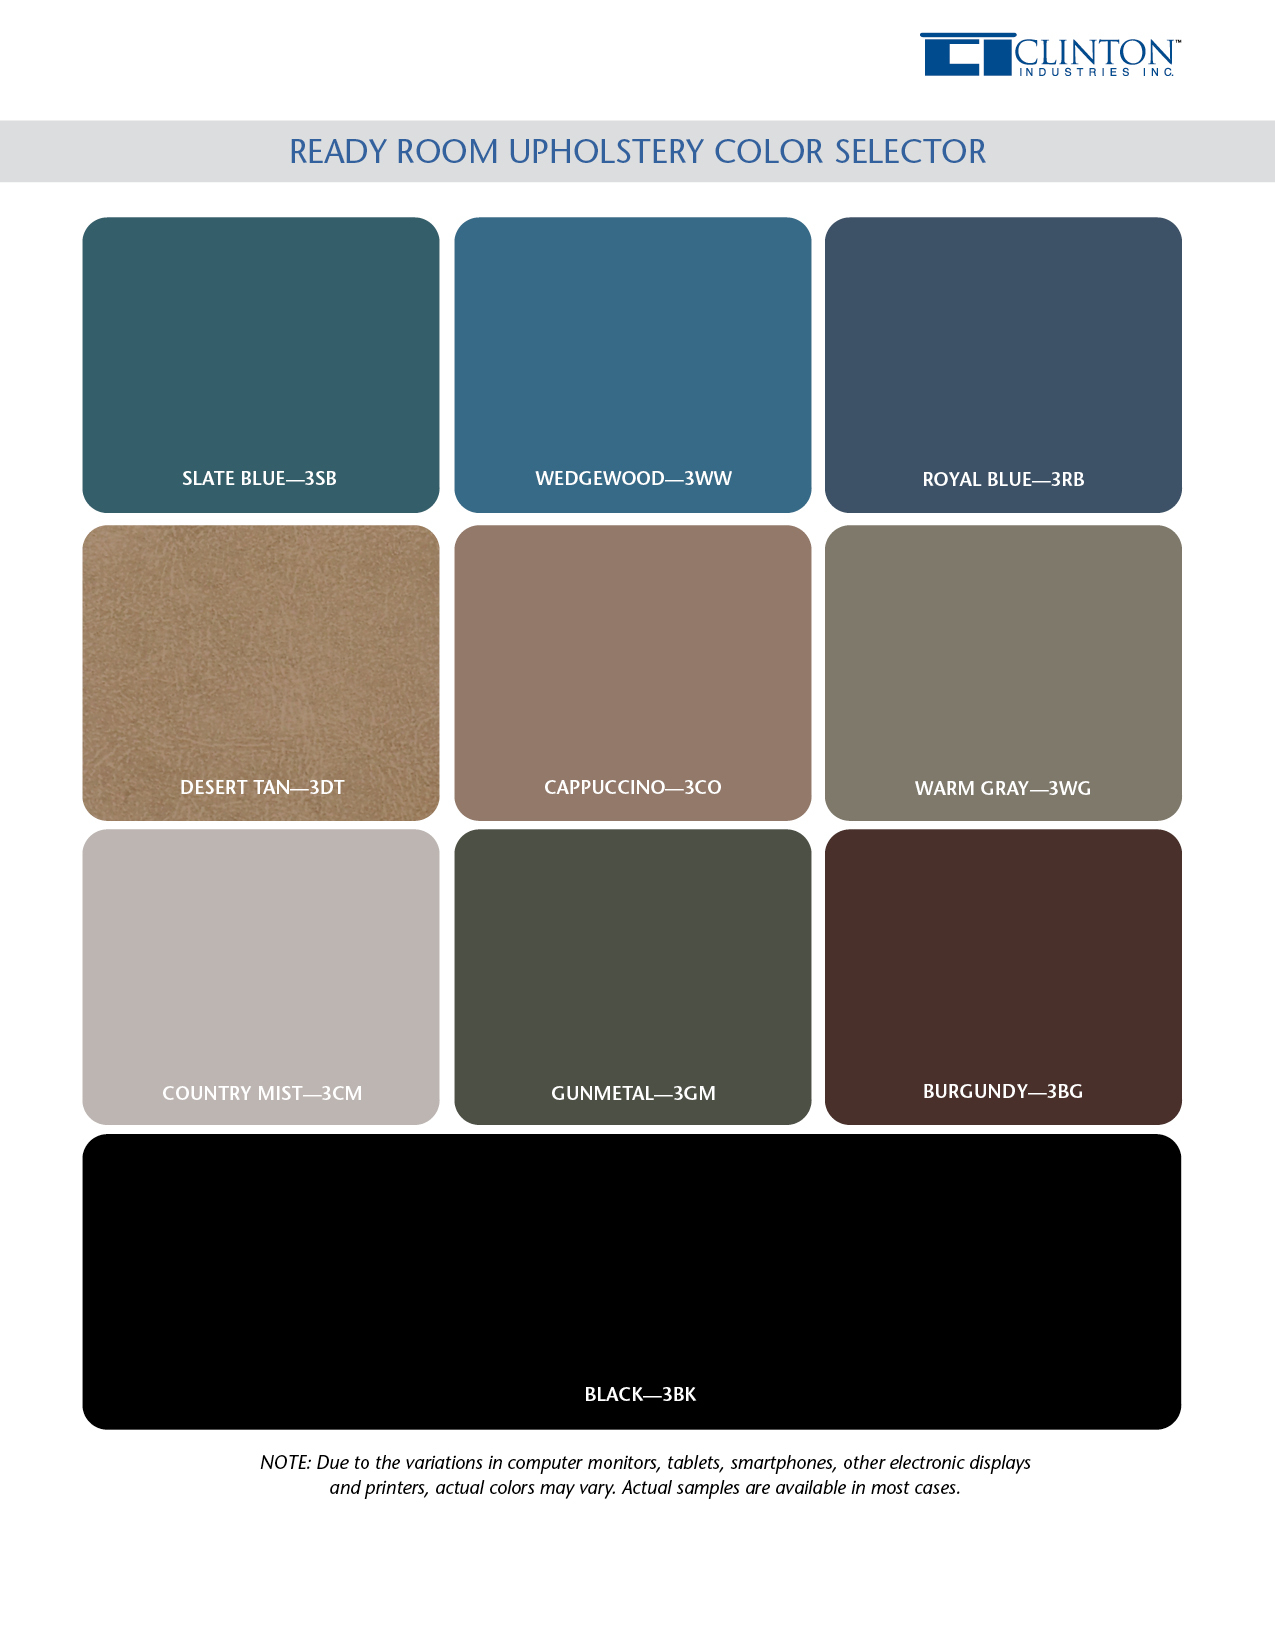 Ready Room Upholstery Color Selector